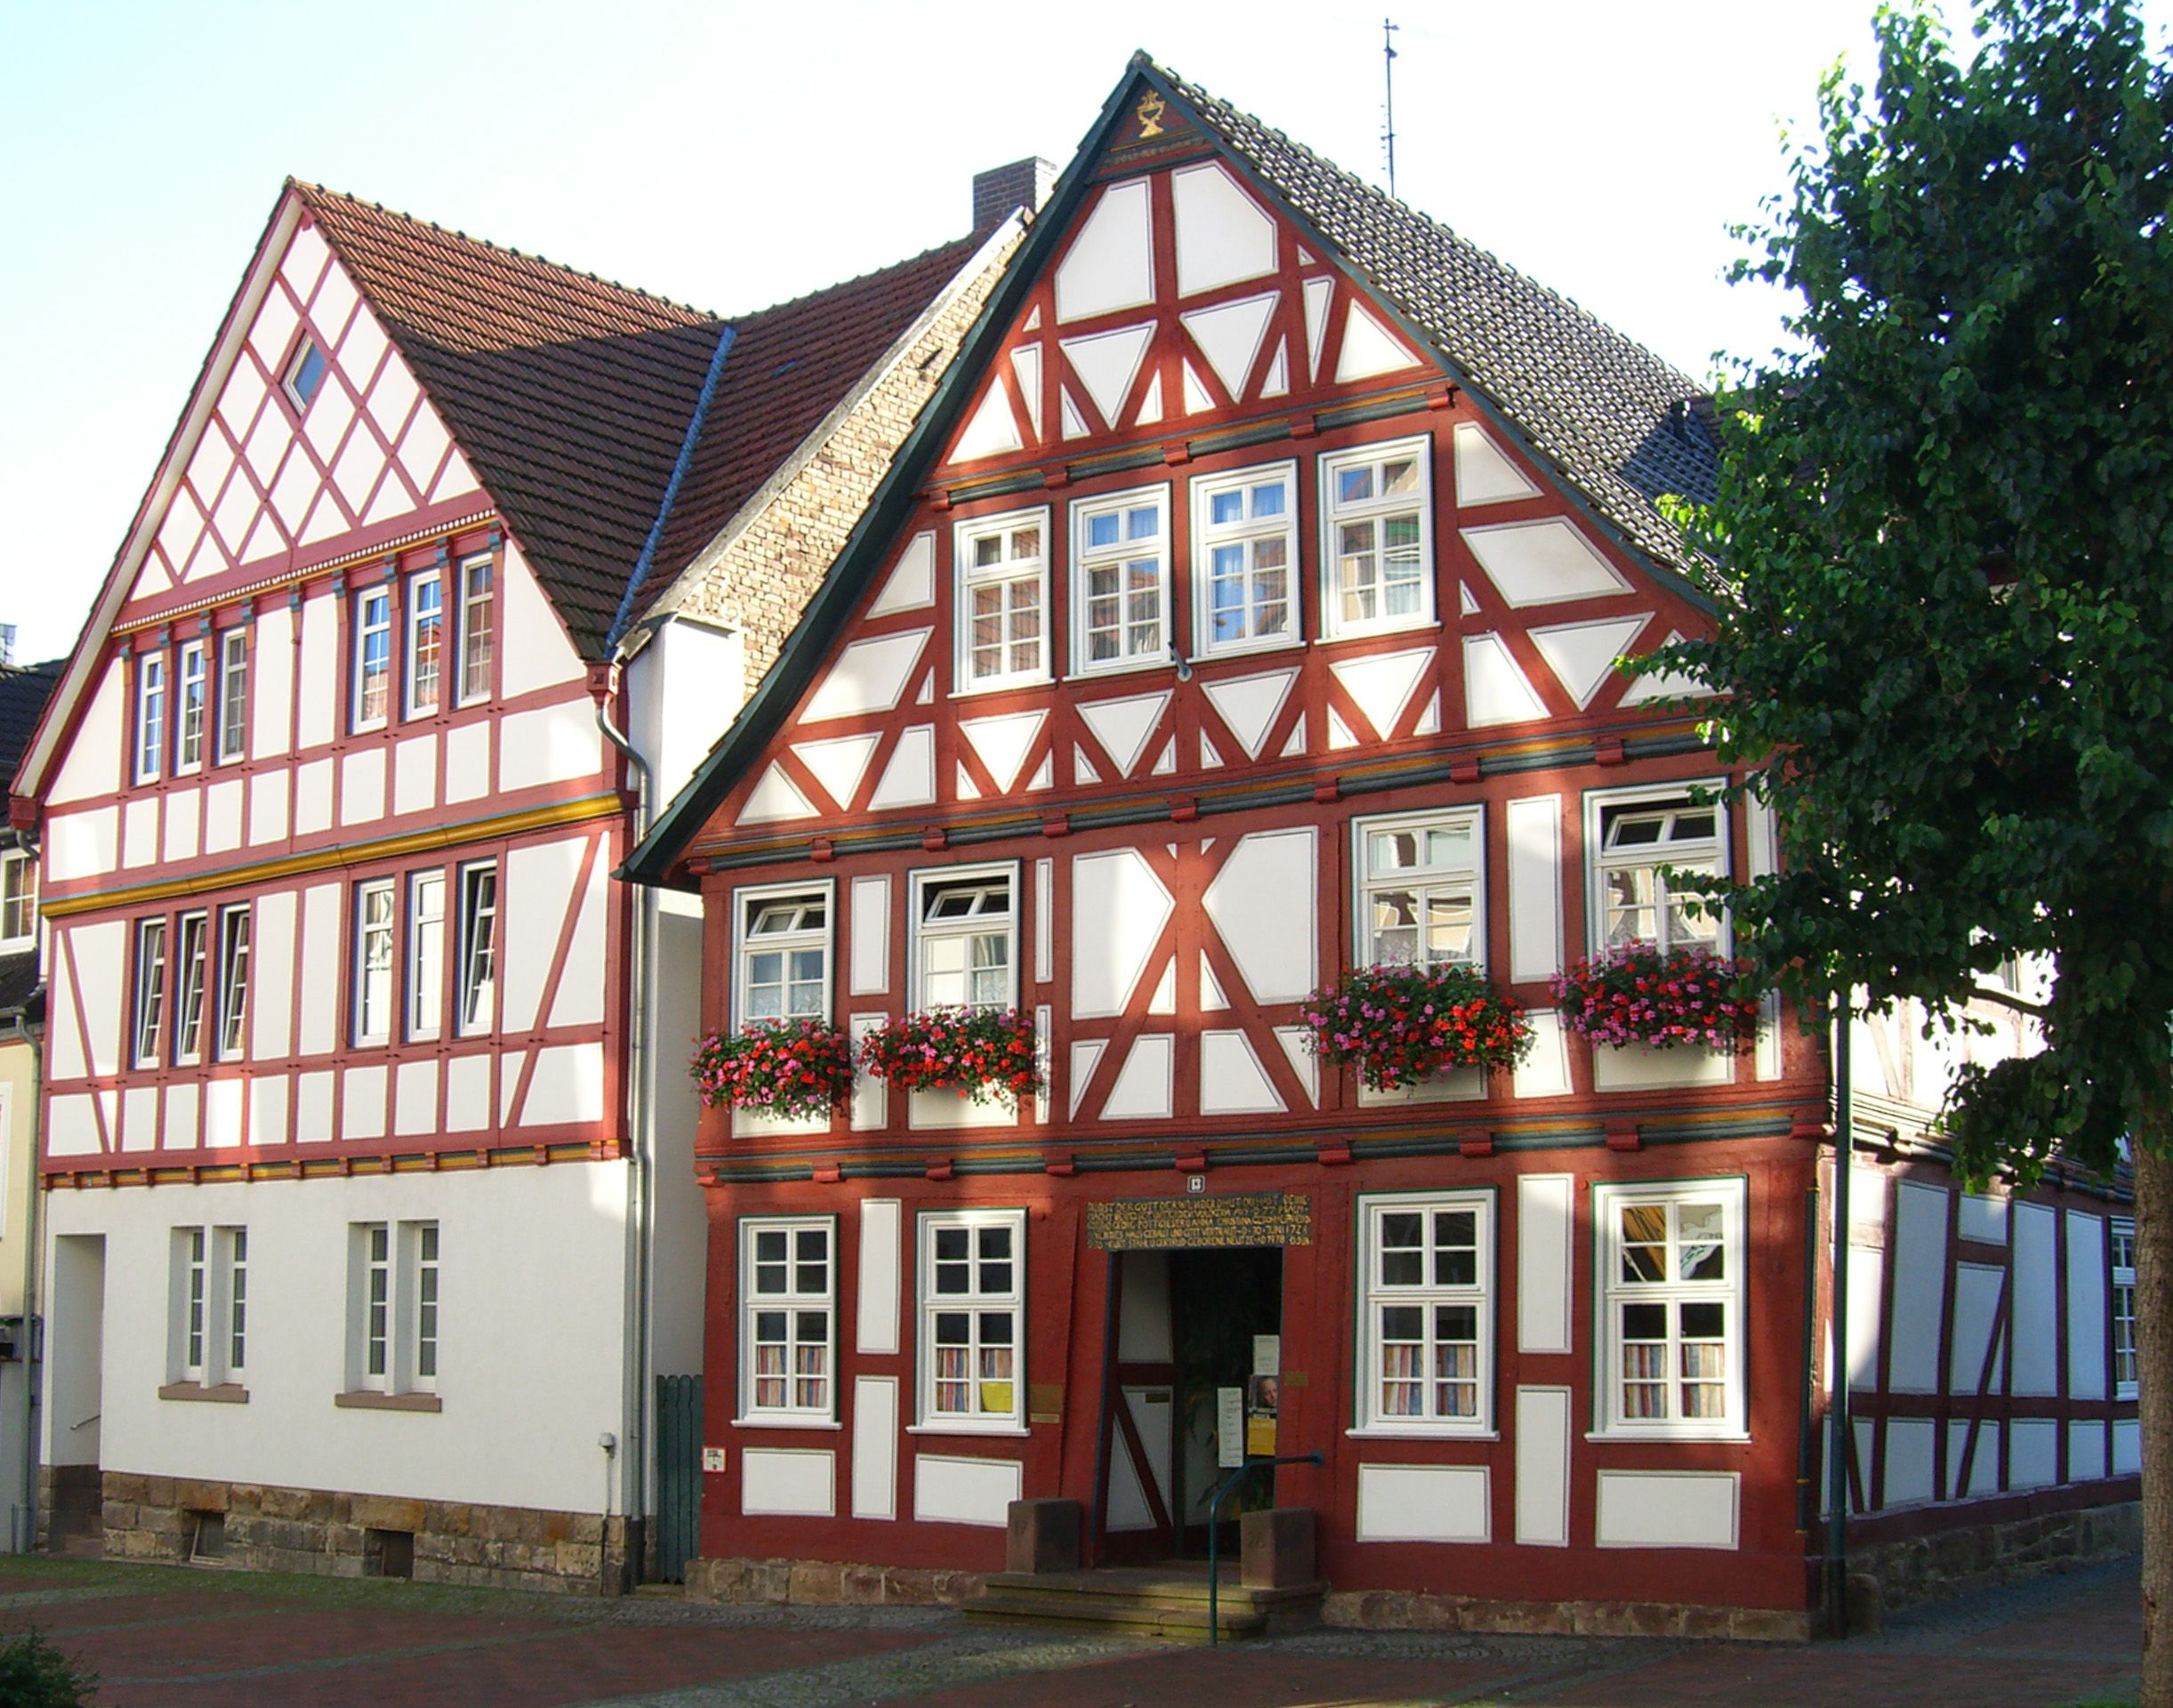 Medieval German Architecture The Walls Are Decorated With Wood